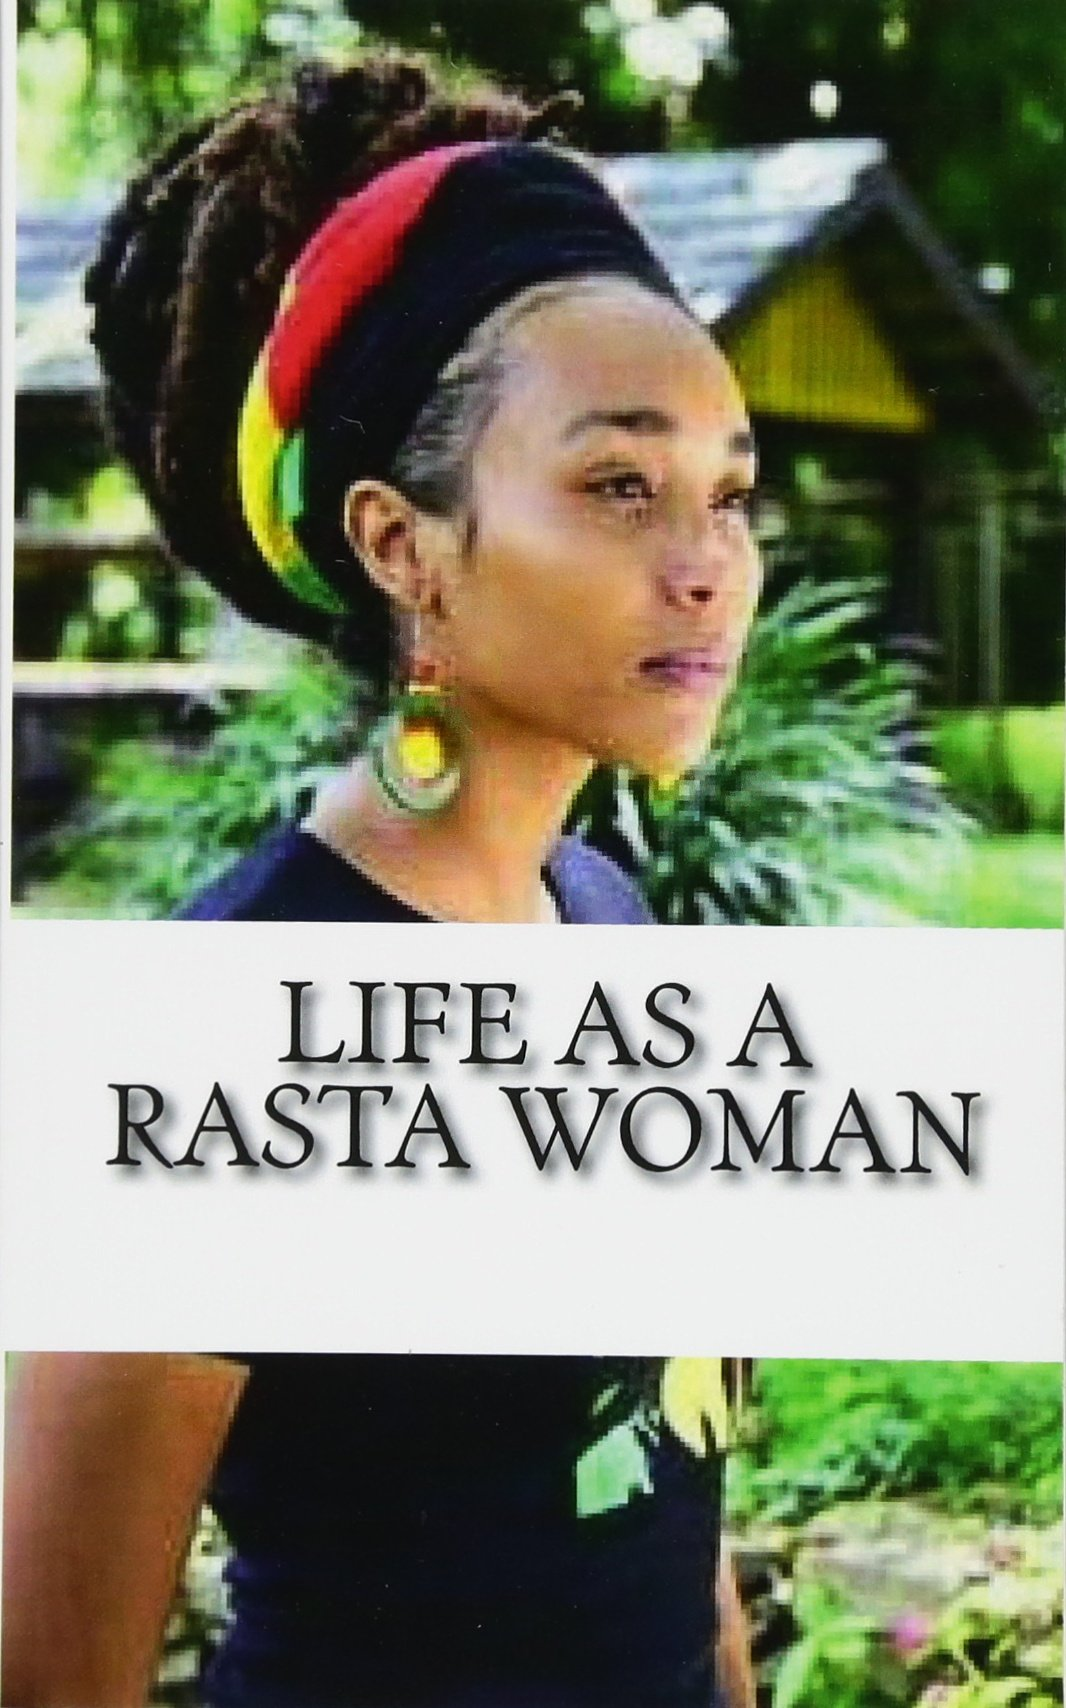 Life as a Rasta Woman 20 Rules